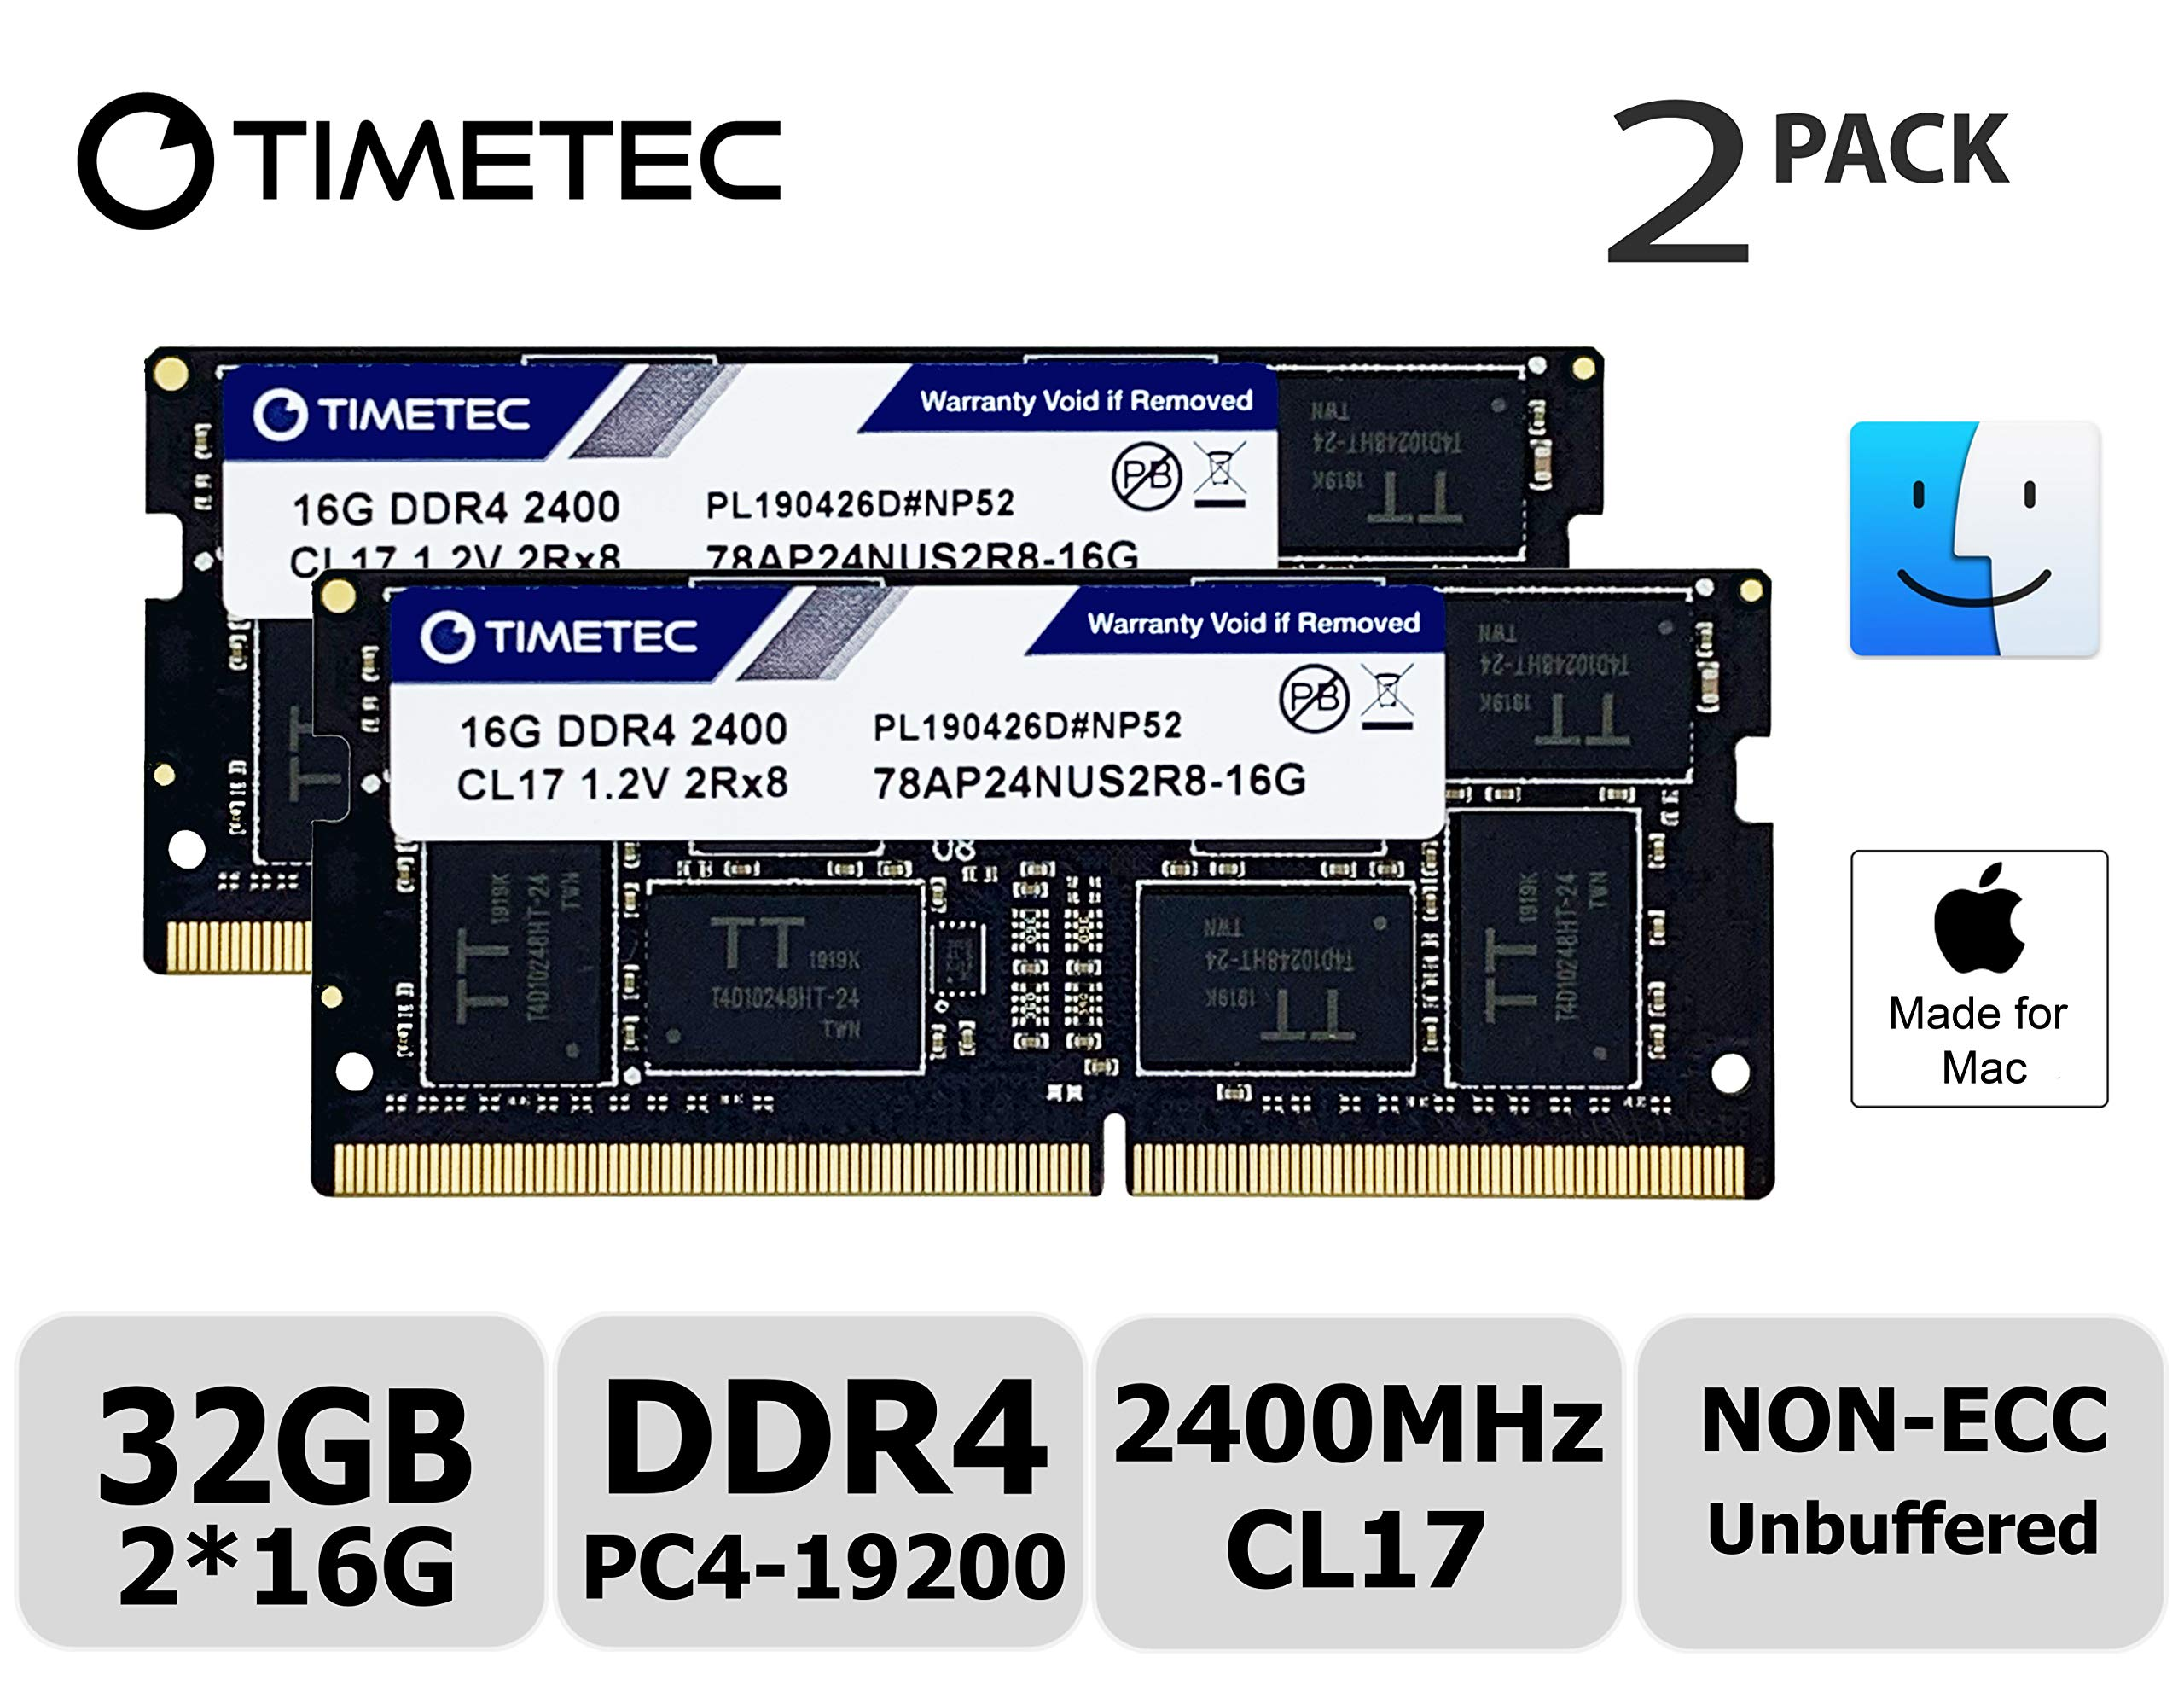 Memoria Ram 32gb Timetec Hynix Ic Kit(2x16gb) Compatible Para Apple 2017 iMac 27-inch W/retina 5k Display 2017 iMac 21.5